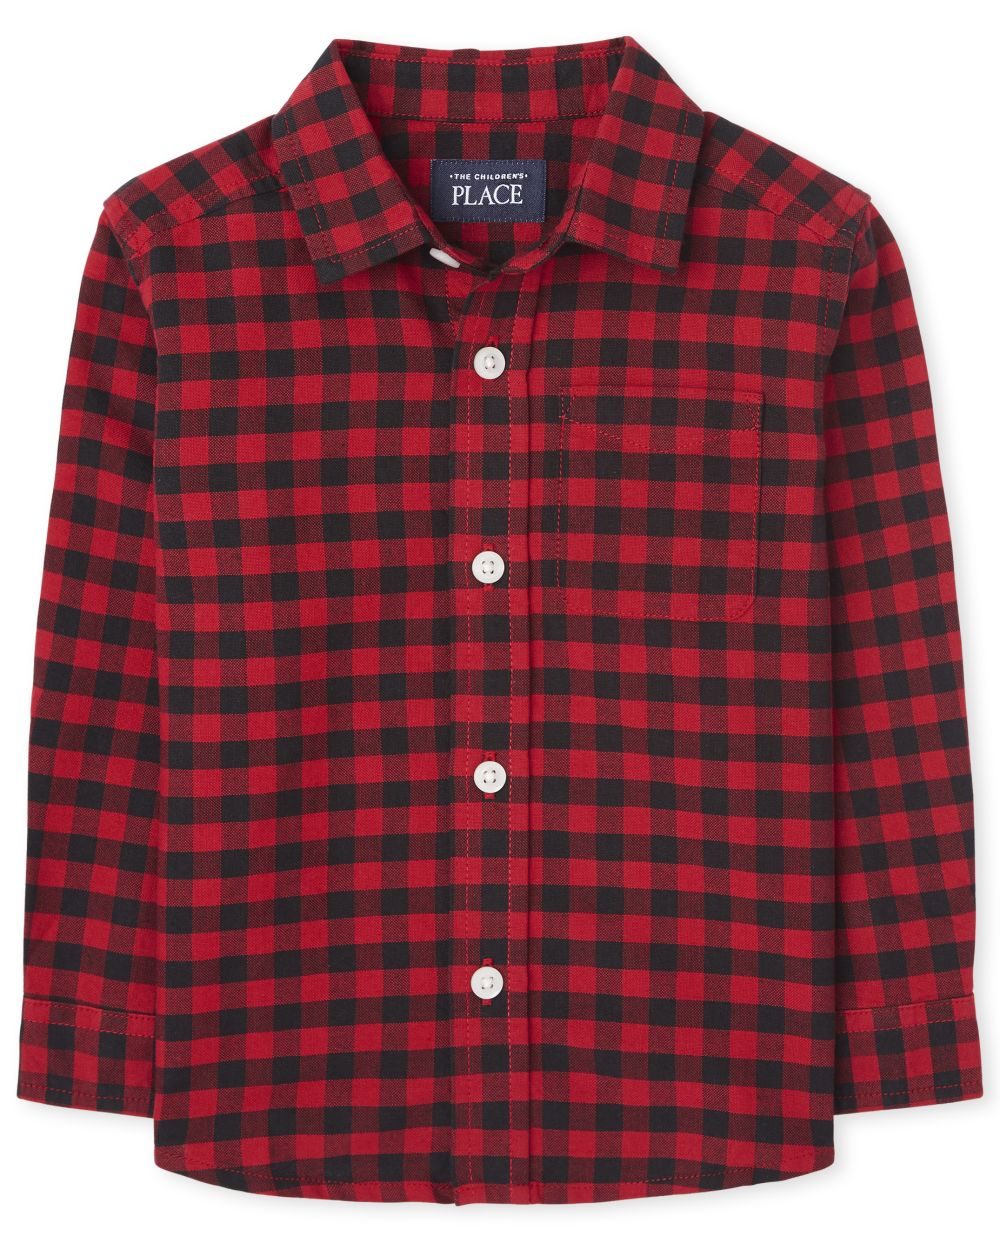 Toddler Boys Matching Family Buffalo Plaid Oxford Button Down Shirt